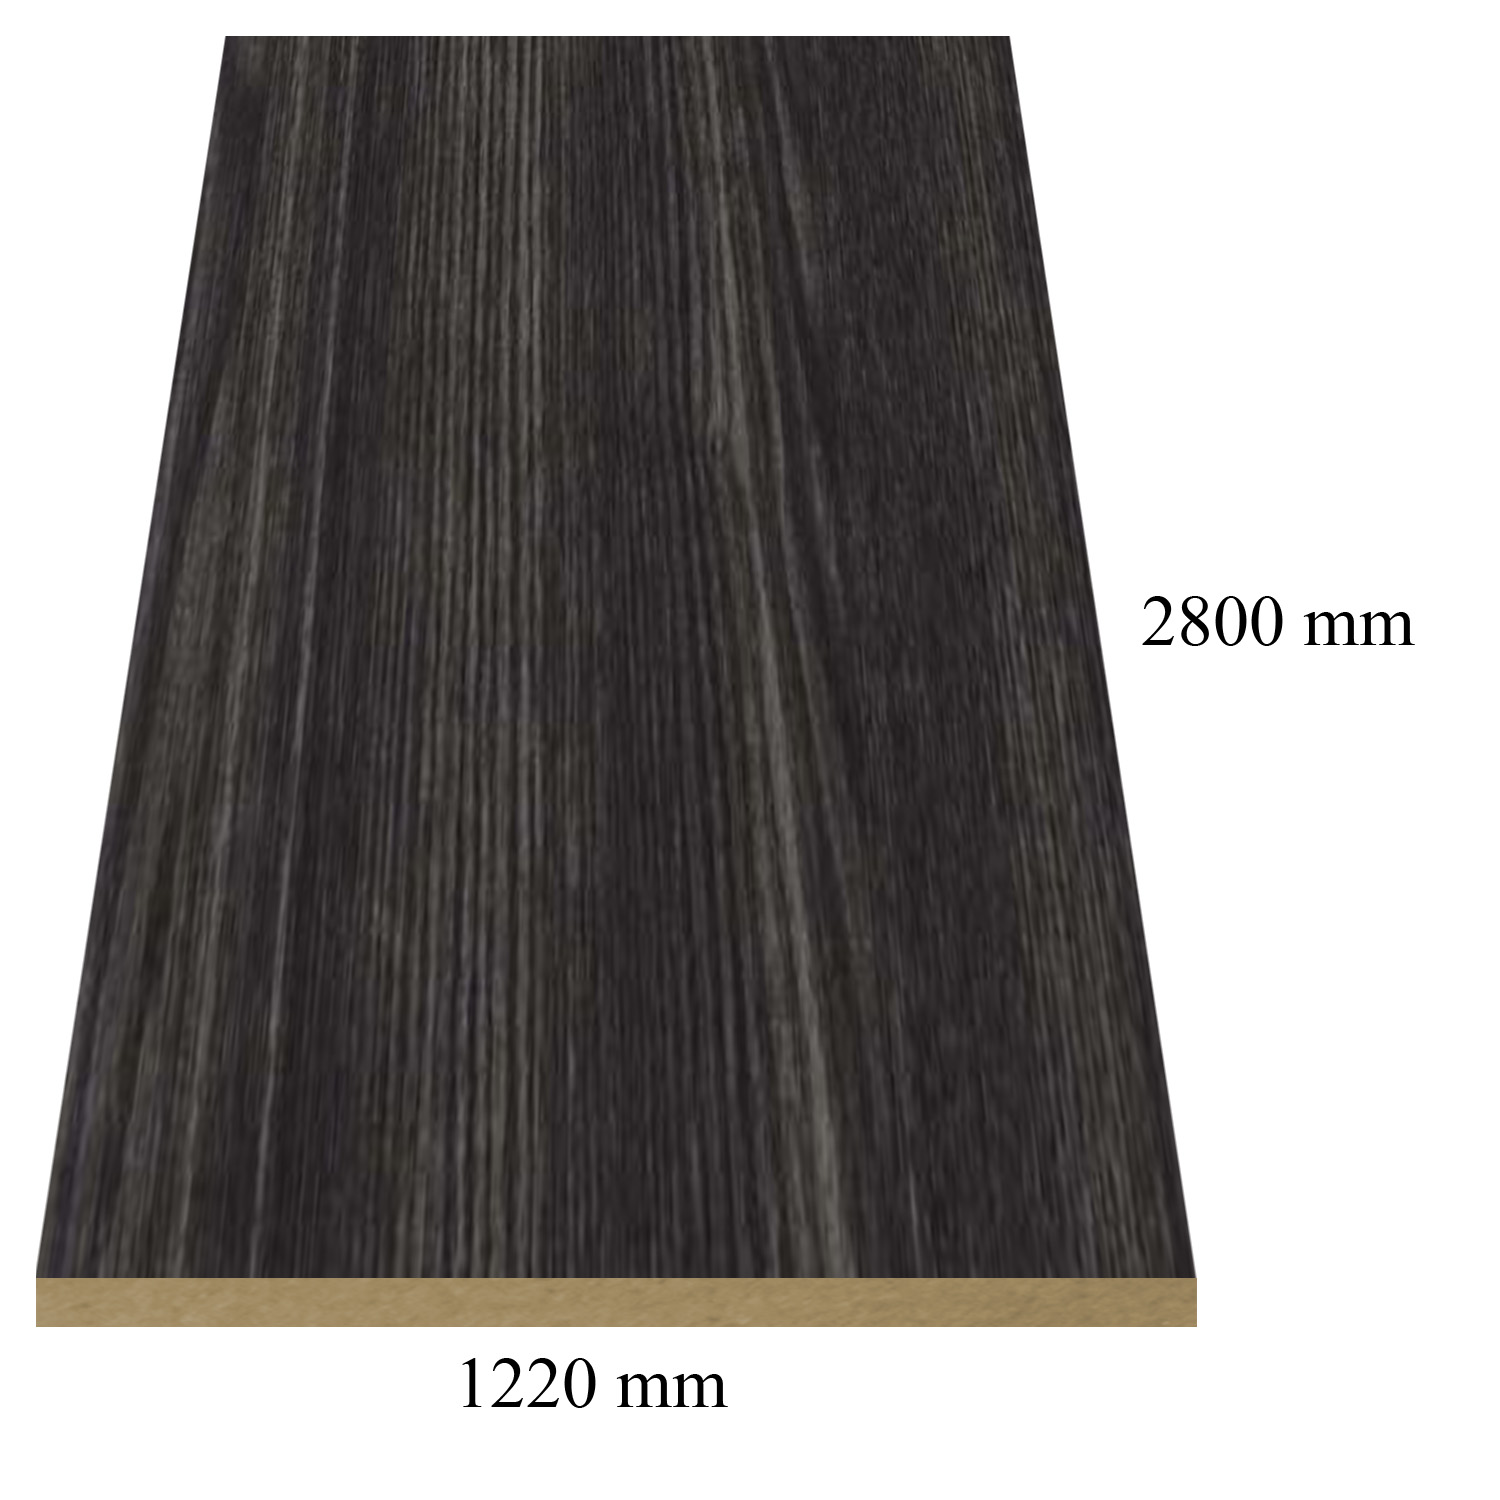 434 /6145 /158 Dark maple high gloss - PVC coated 18 mm MDF